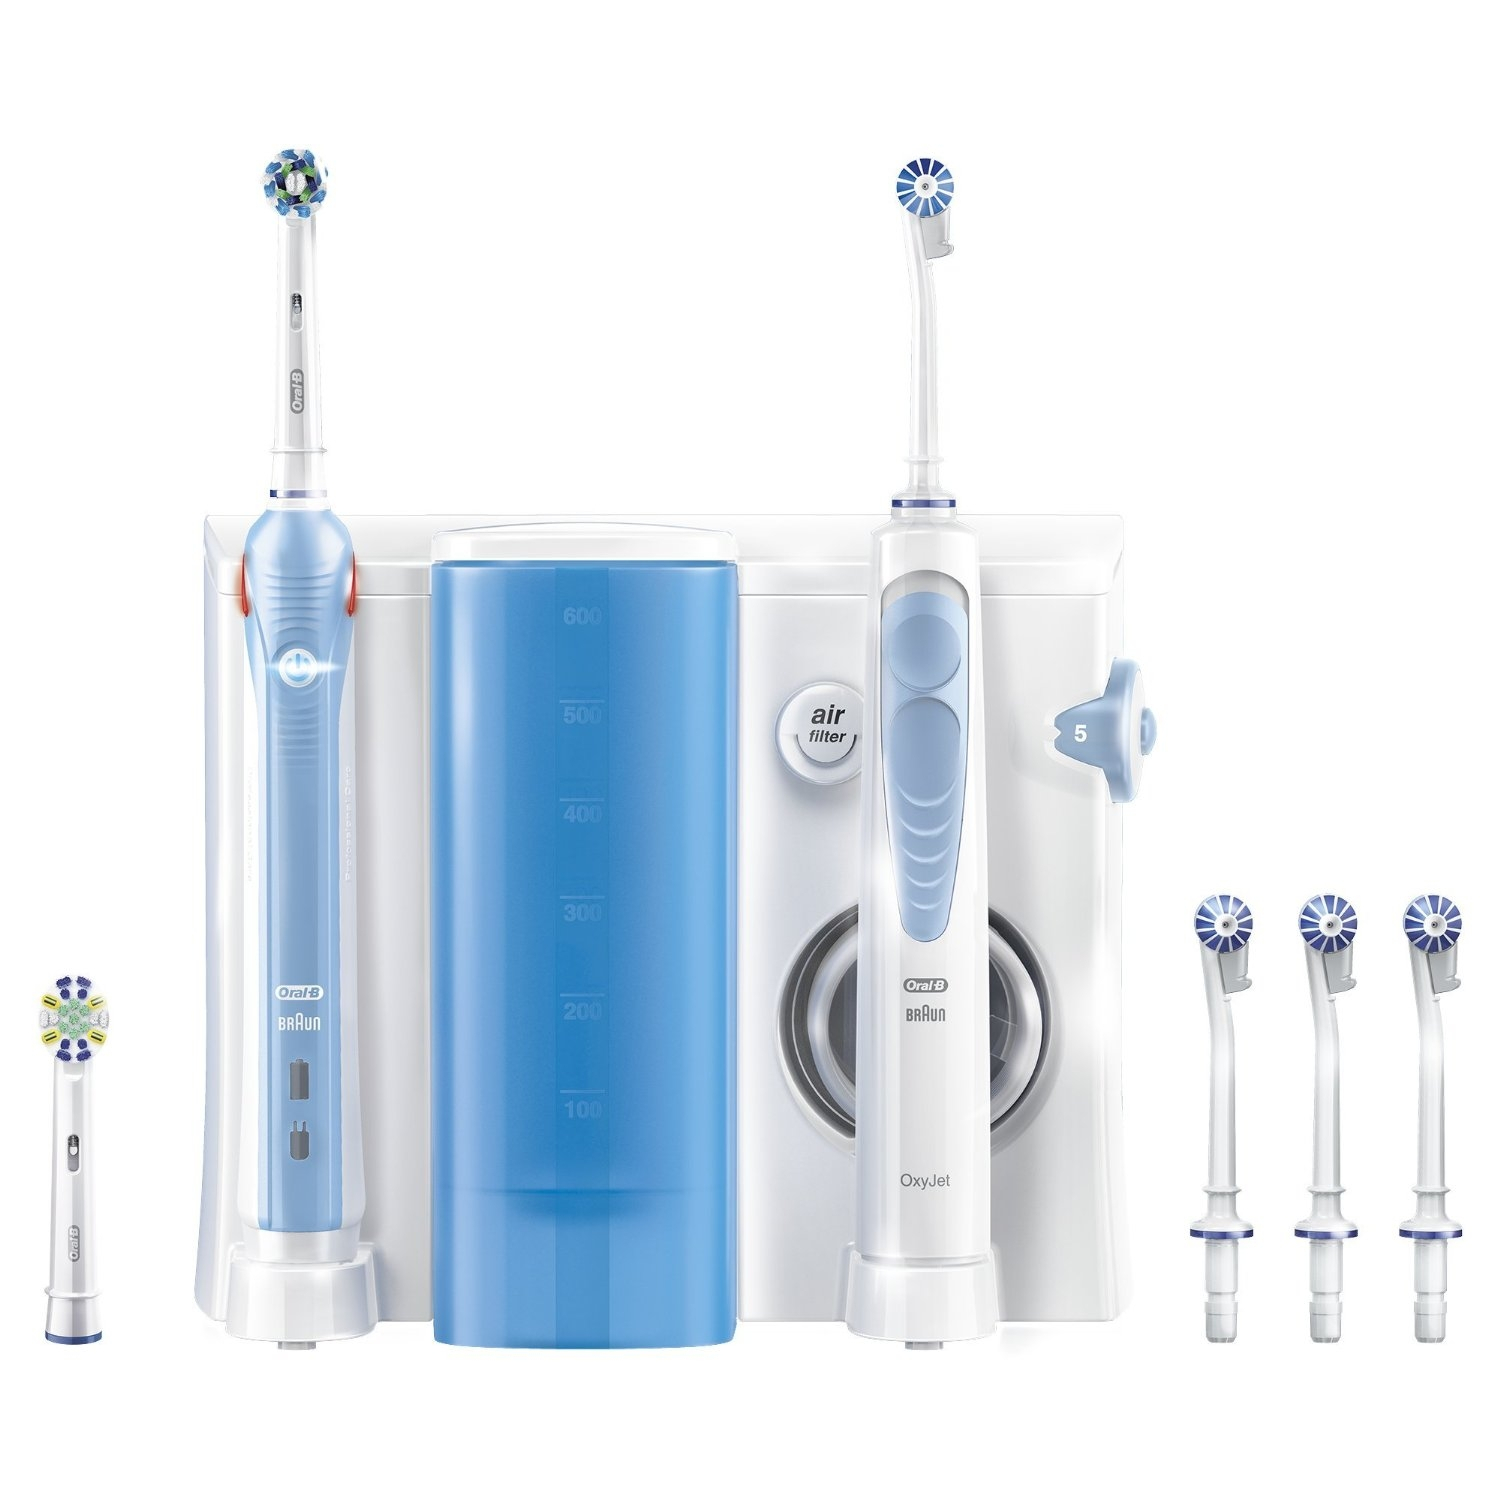 Oral-B Center 1000 Oxyjet + Pro 1000 Reinigungssystem